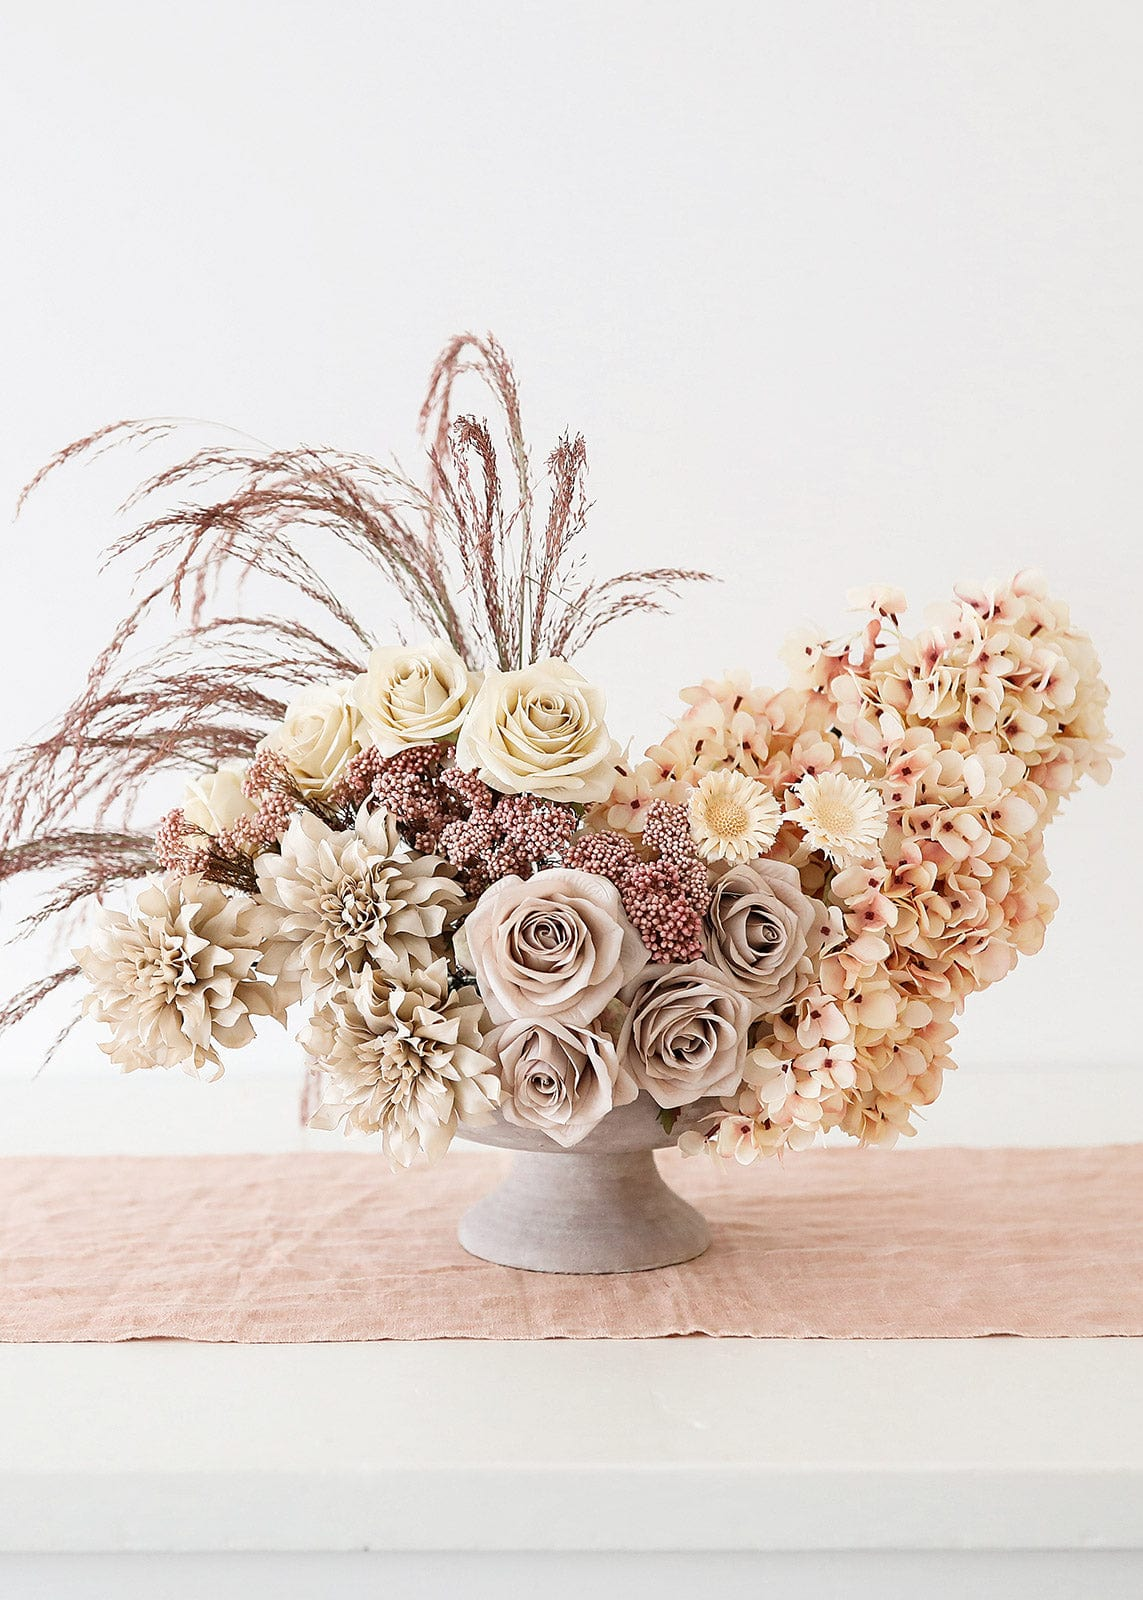 Blush and Beige Flower Arrangement of Silk and Dried Flowers